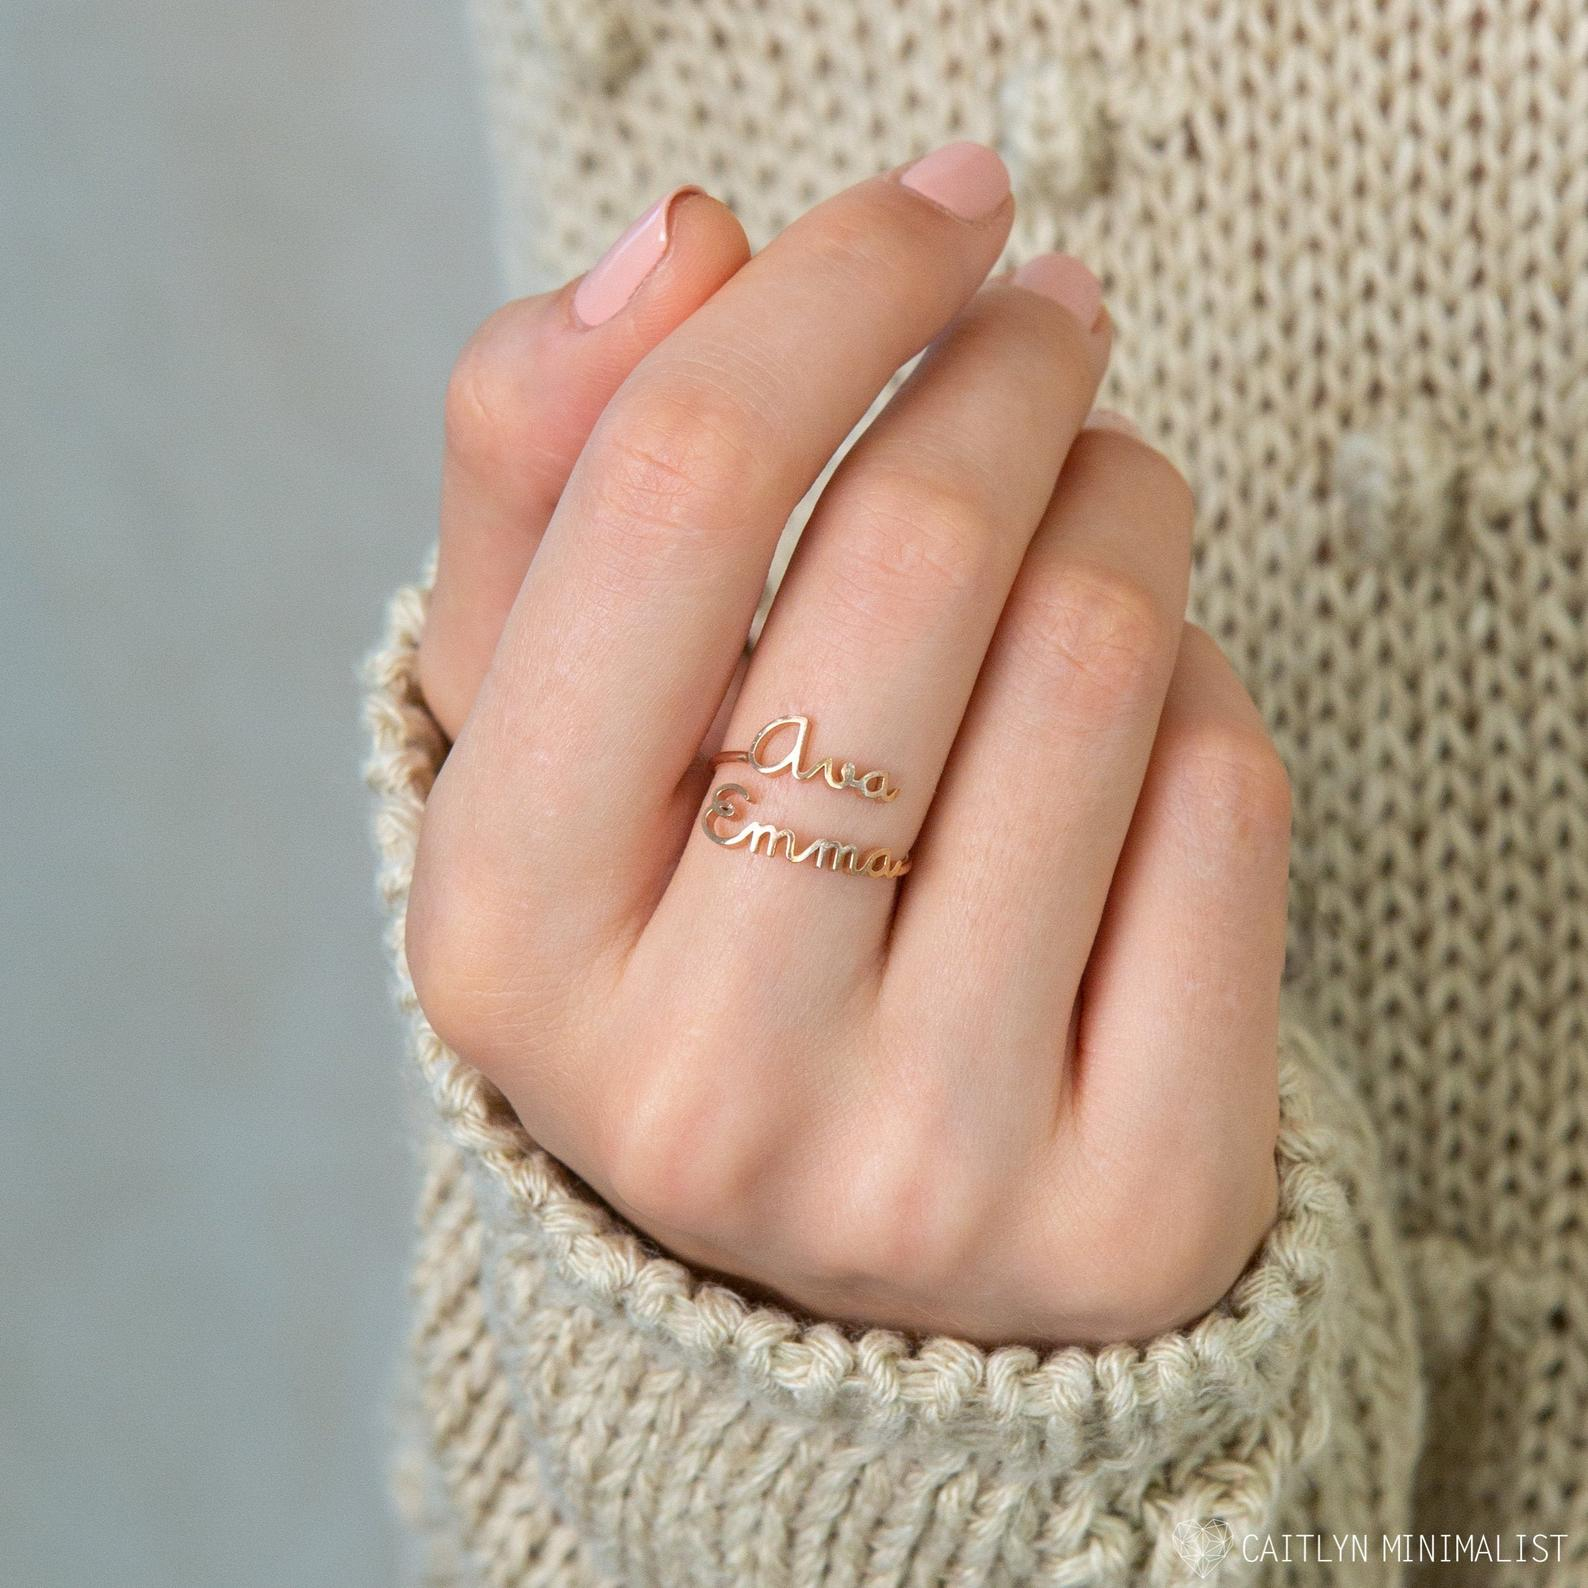 CaitlynMinimalist Two Name Ring Double Name Ring in Sterling Silver, Gold and Rose Gold